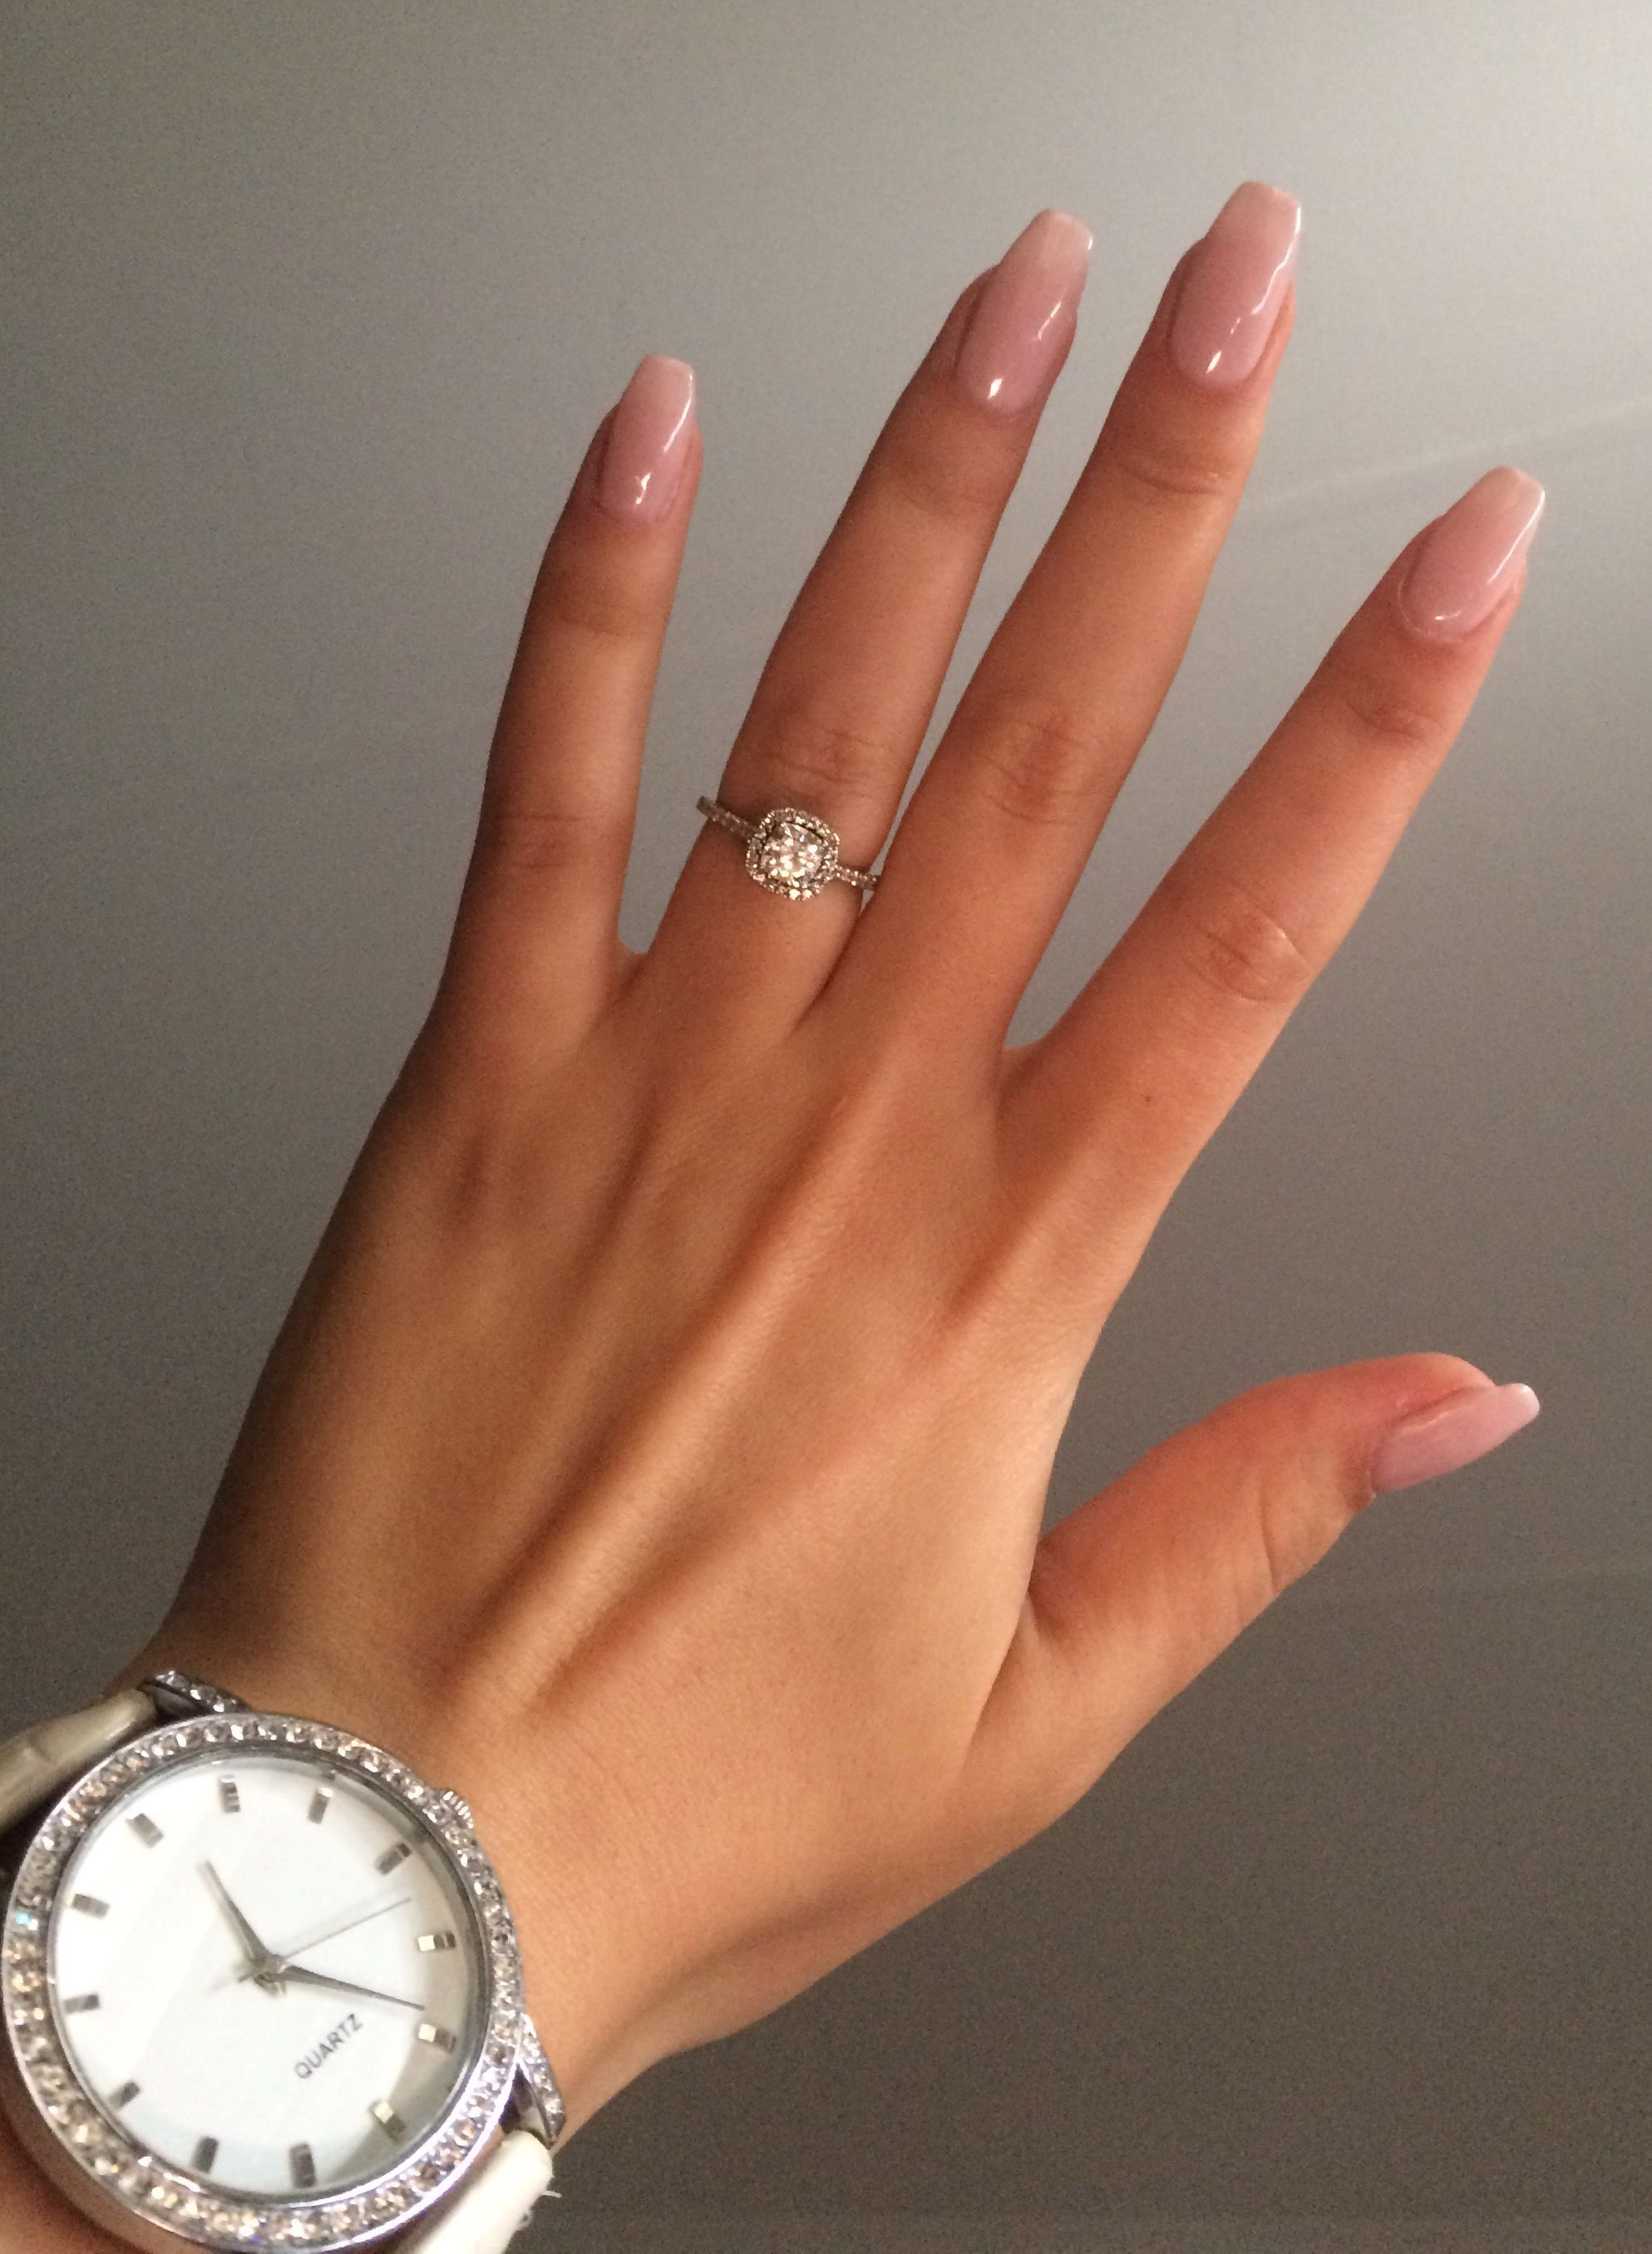 Nude pink coffin nails | Nails | Pinterest